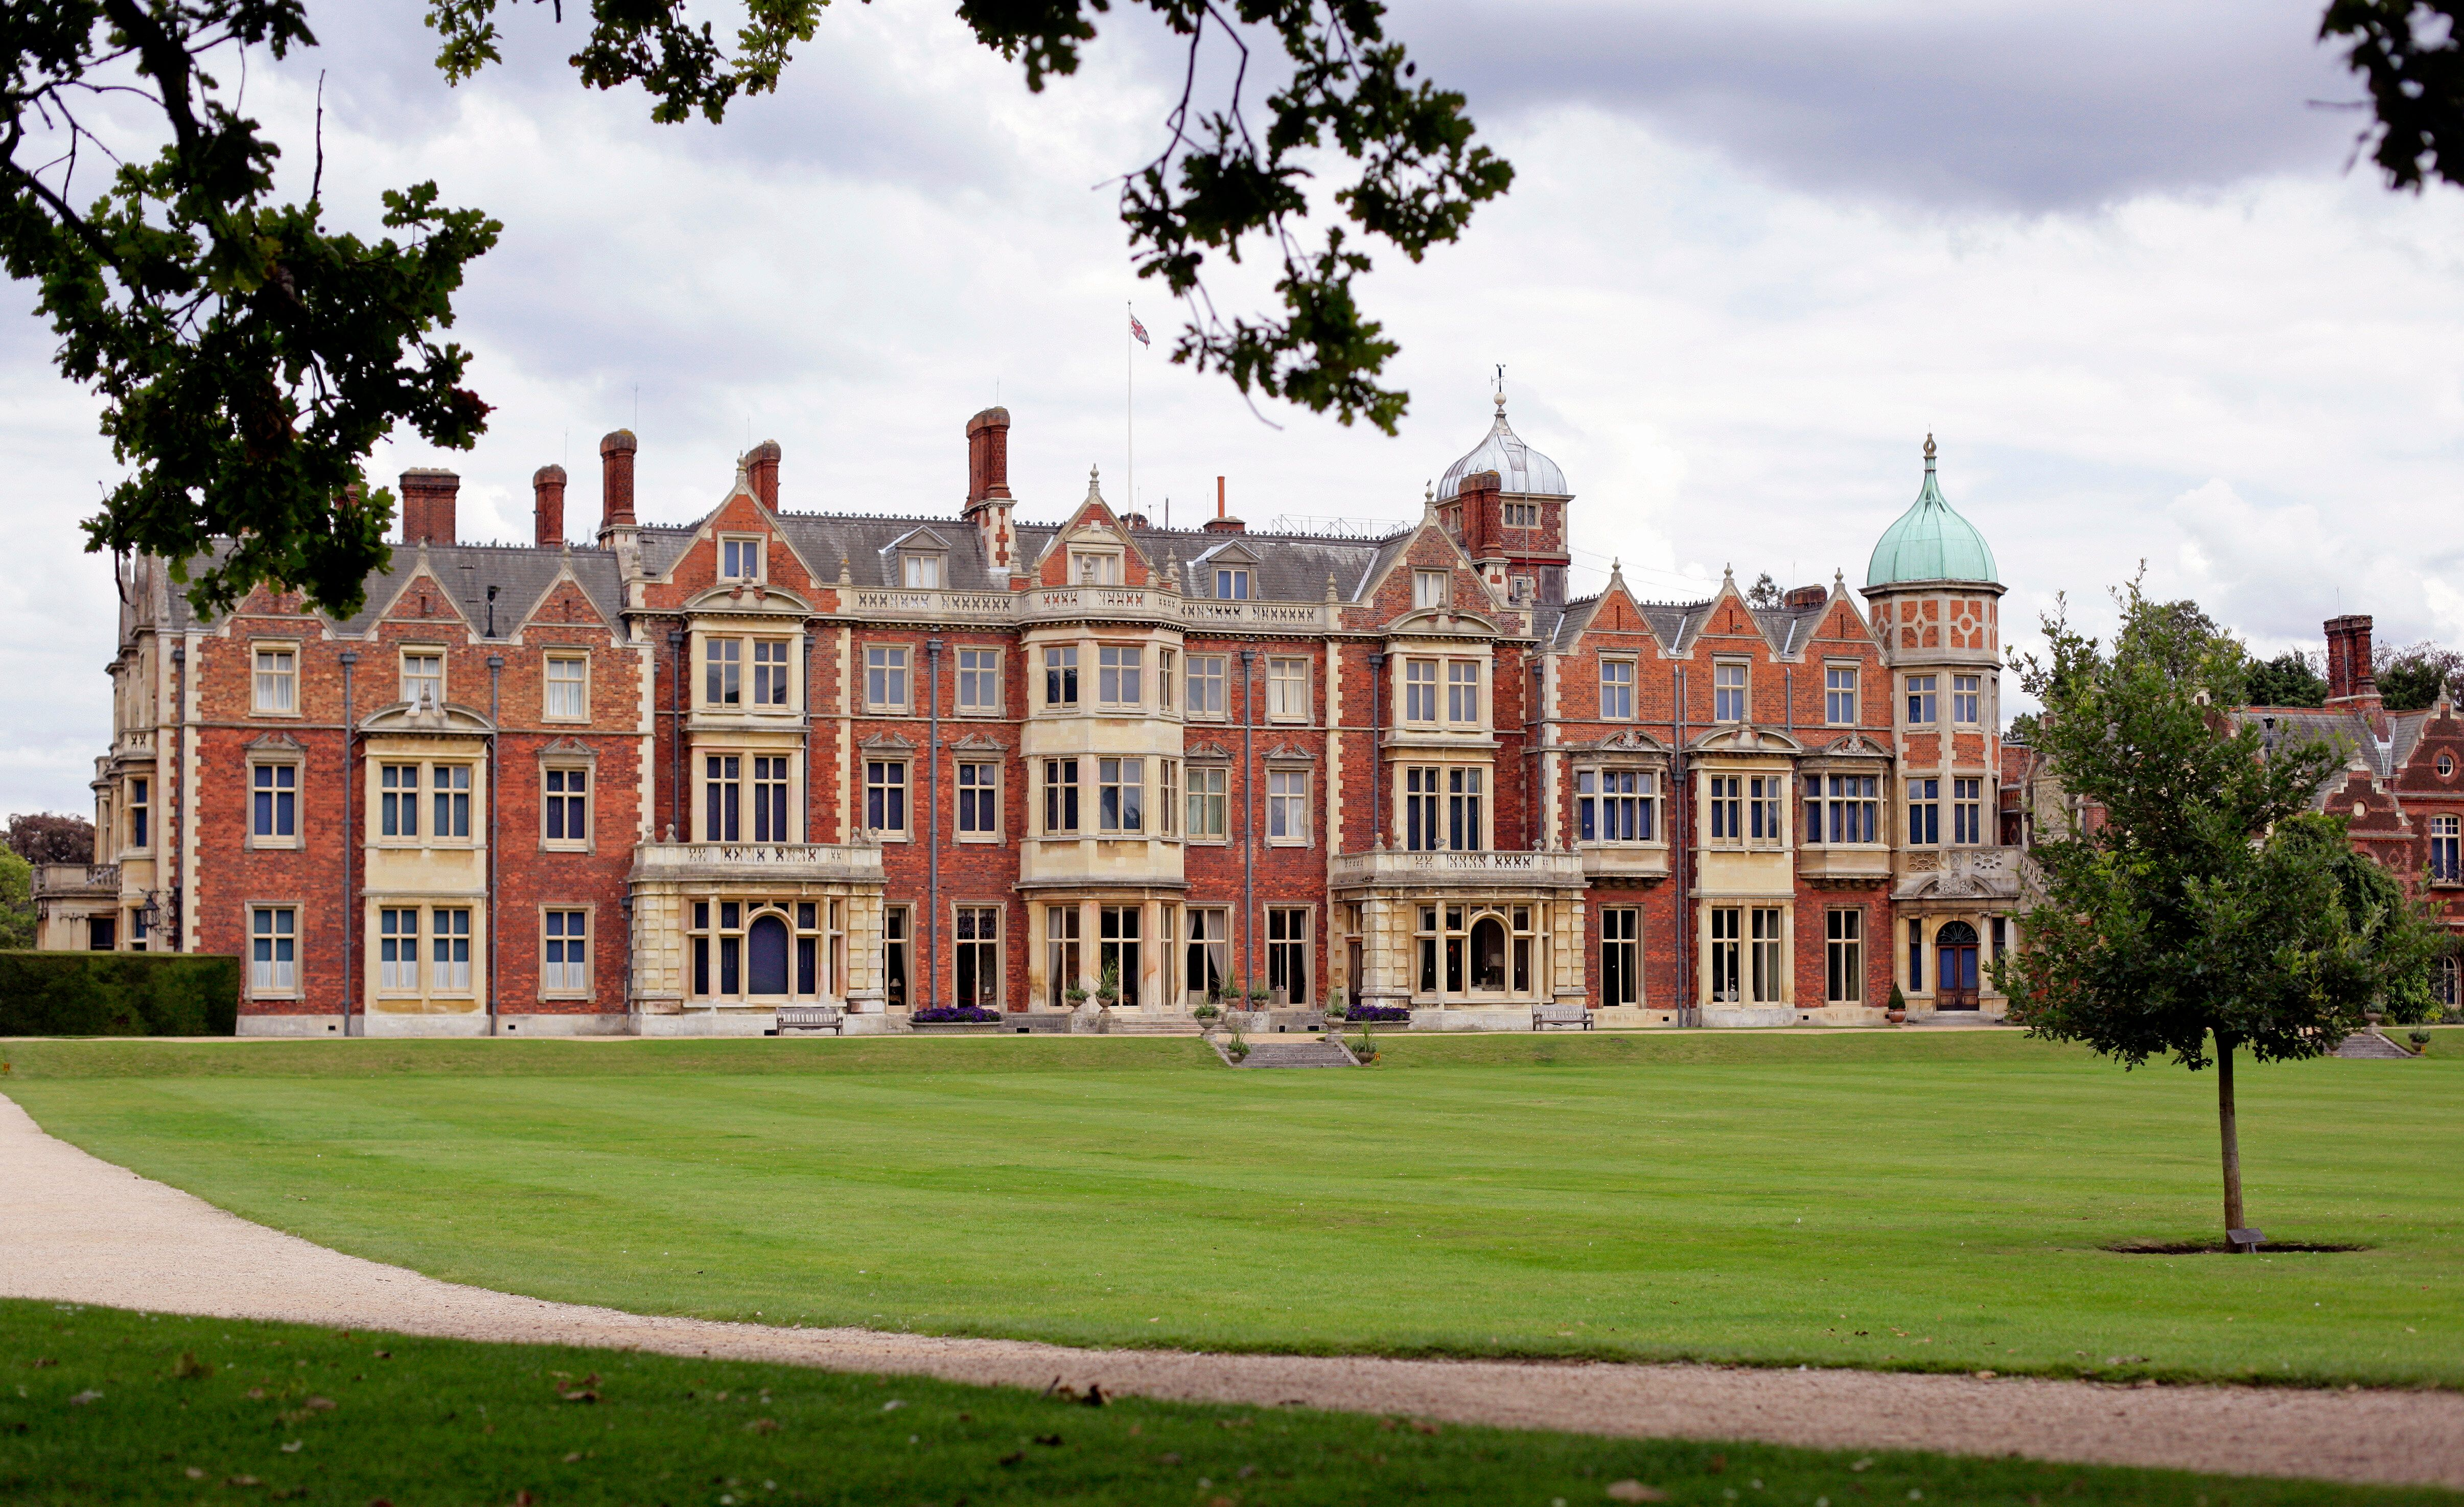 General view of Sandringham House, Queen Elizabeth II's country retreat, at Sandringham on August 30, 2011, in King's Lynn, England.